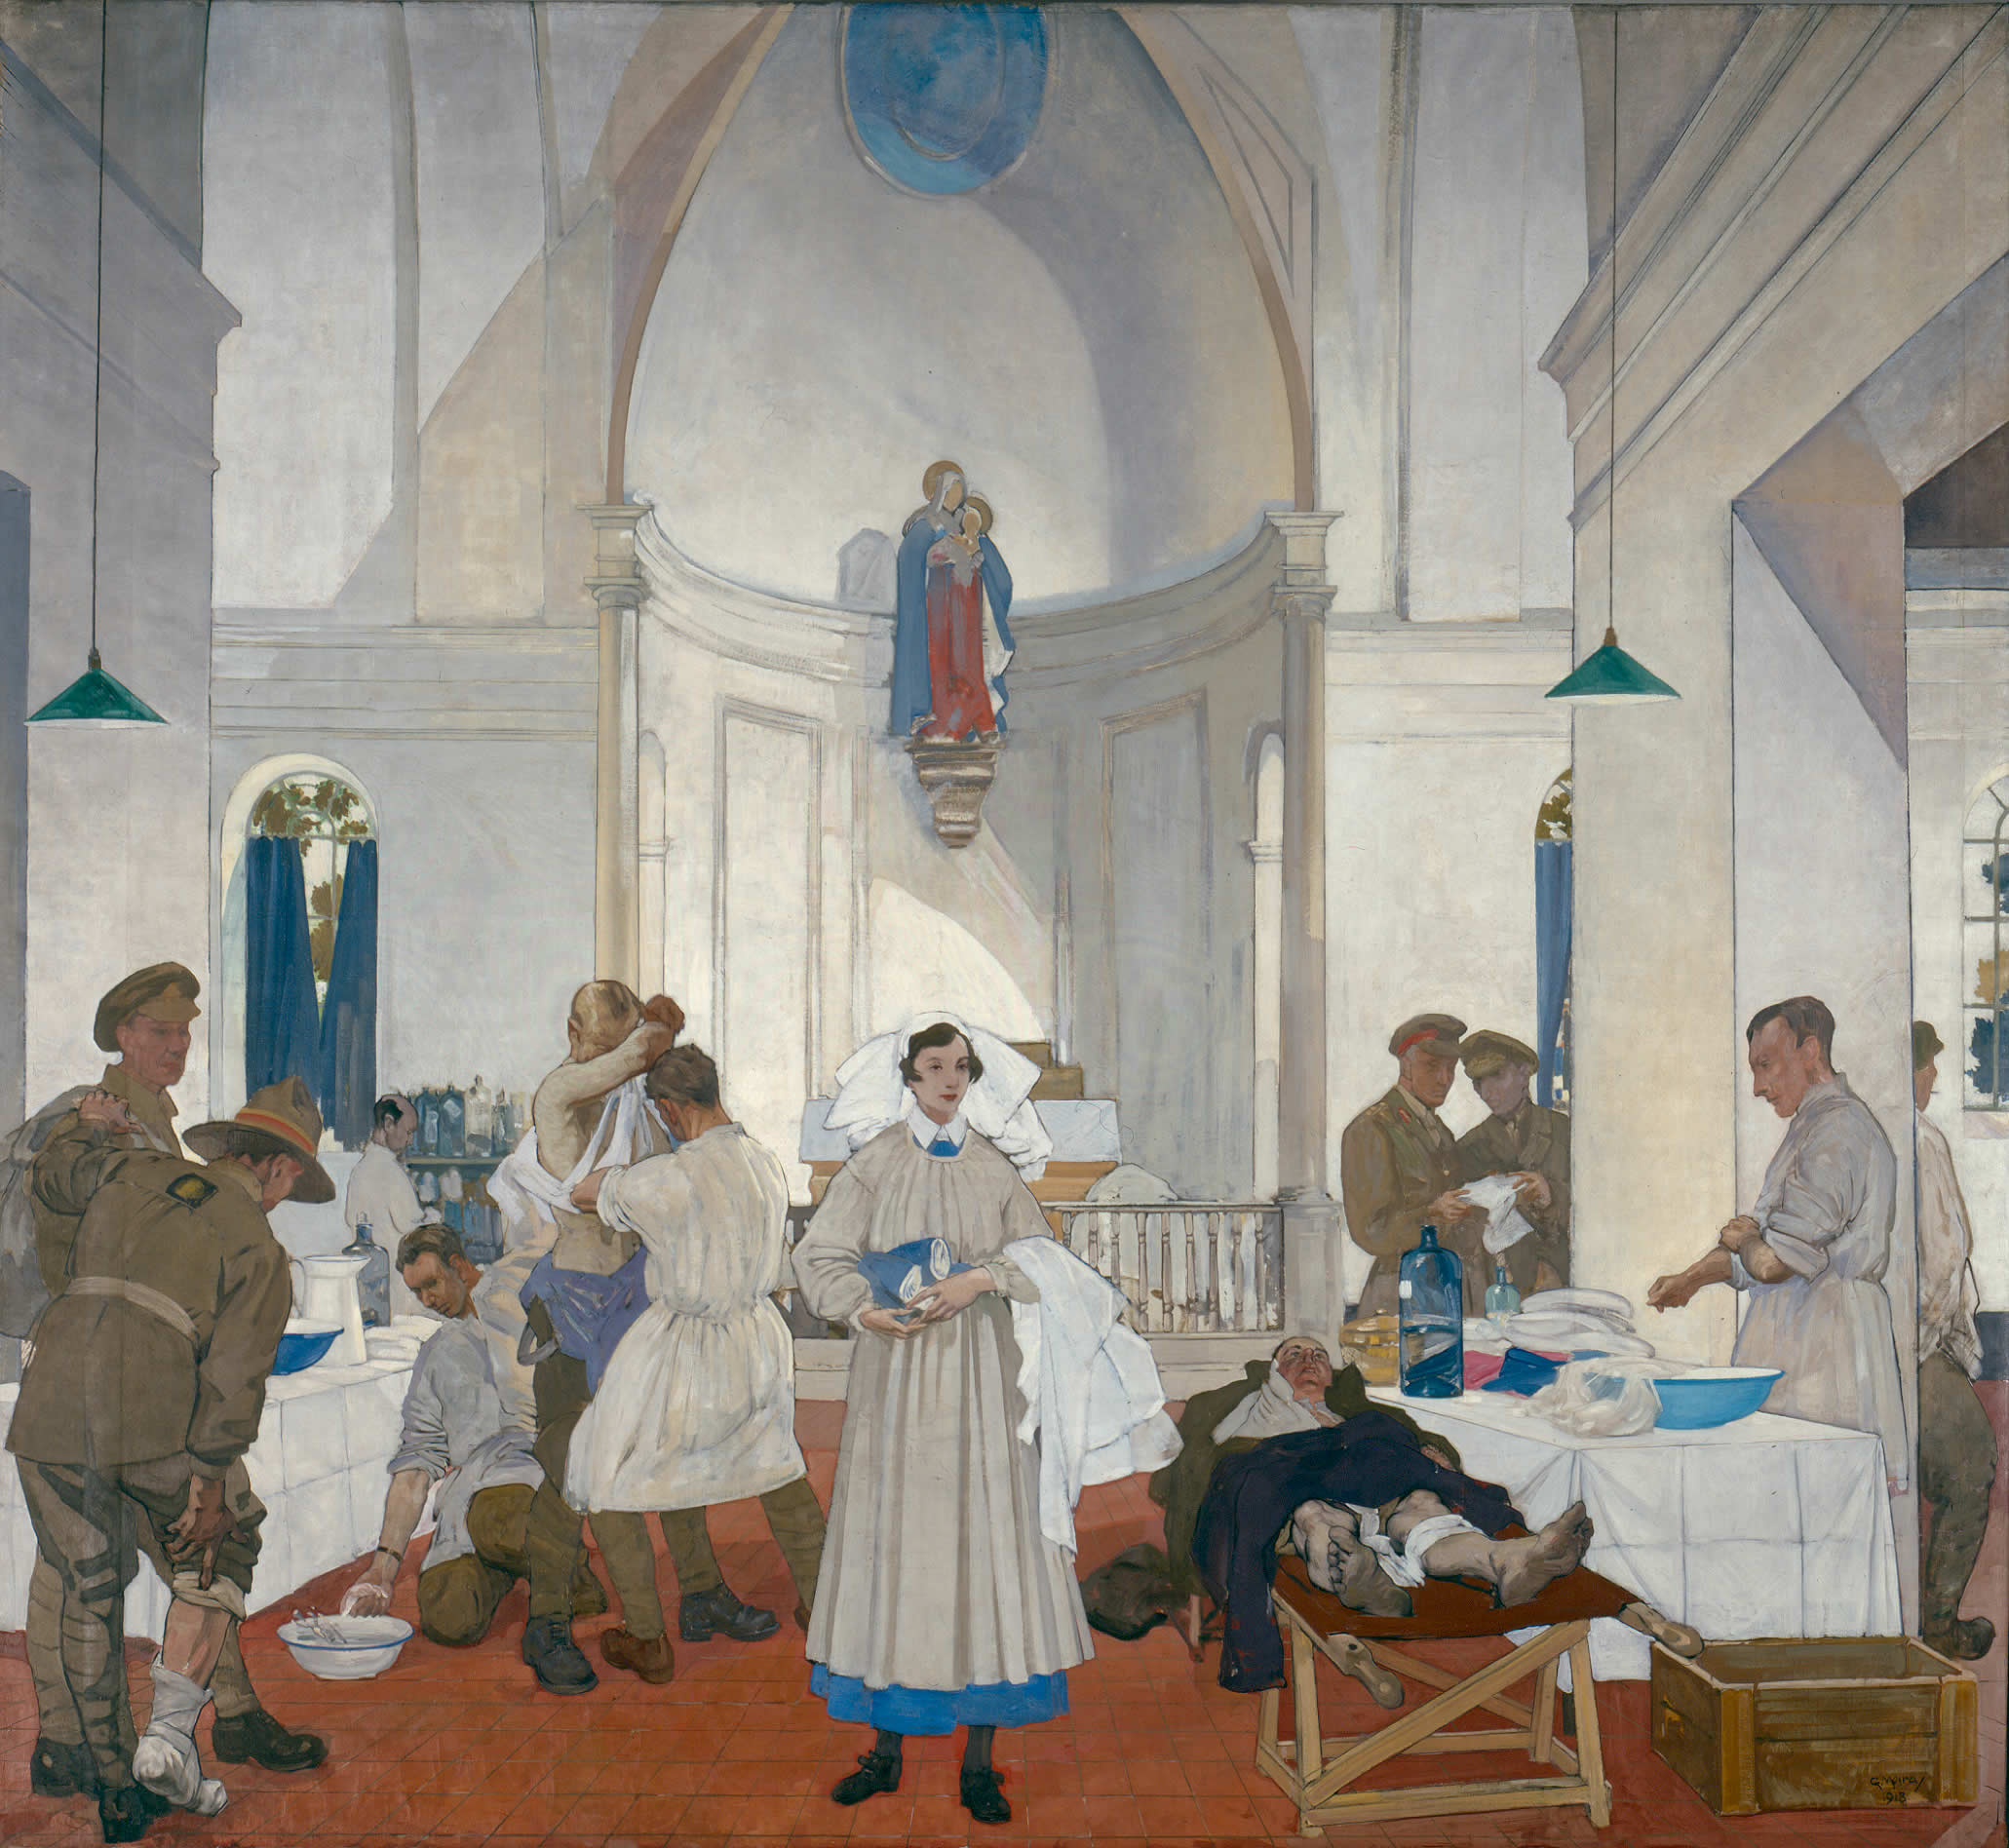 <i>No. 3 Canadian Stationary Hospital at Doullens</i>